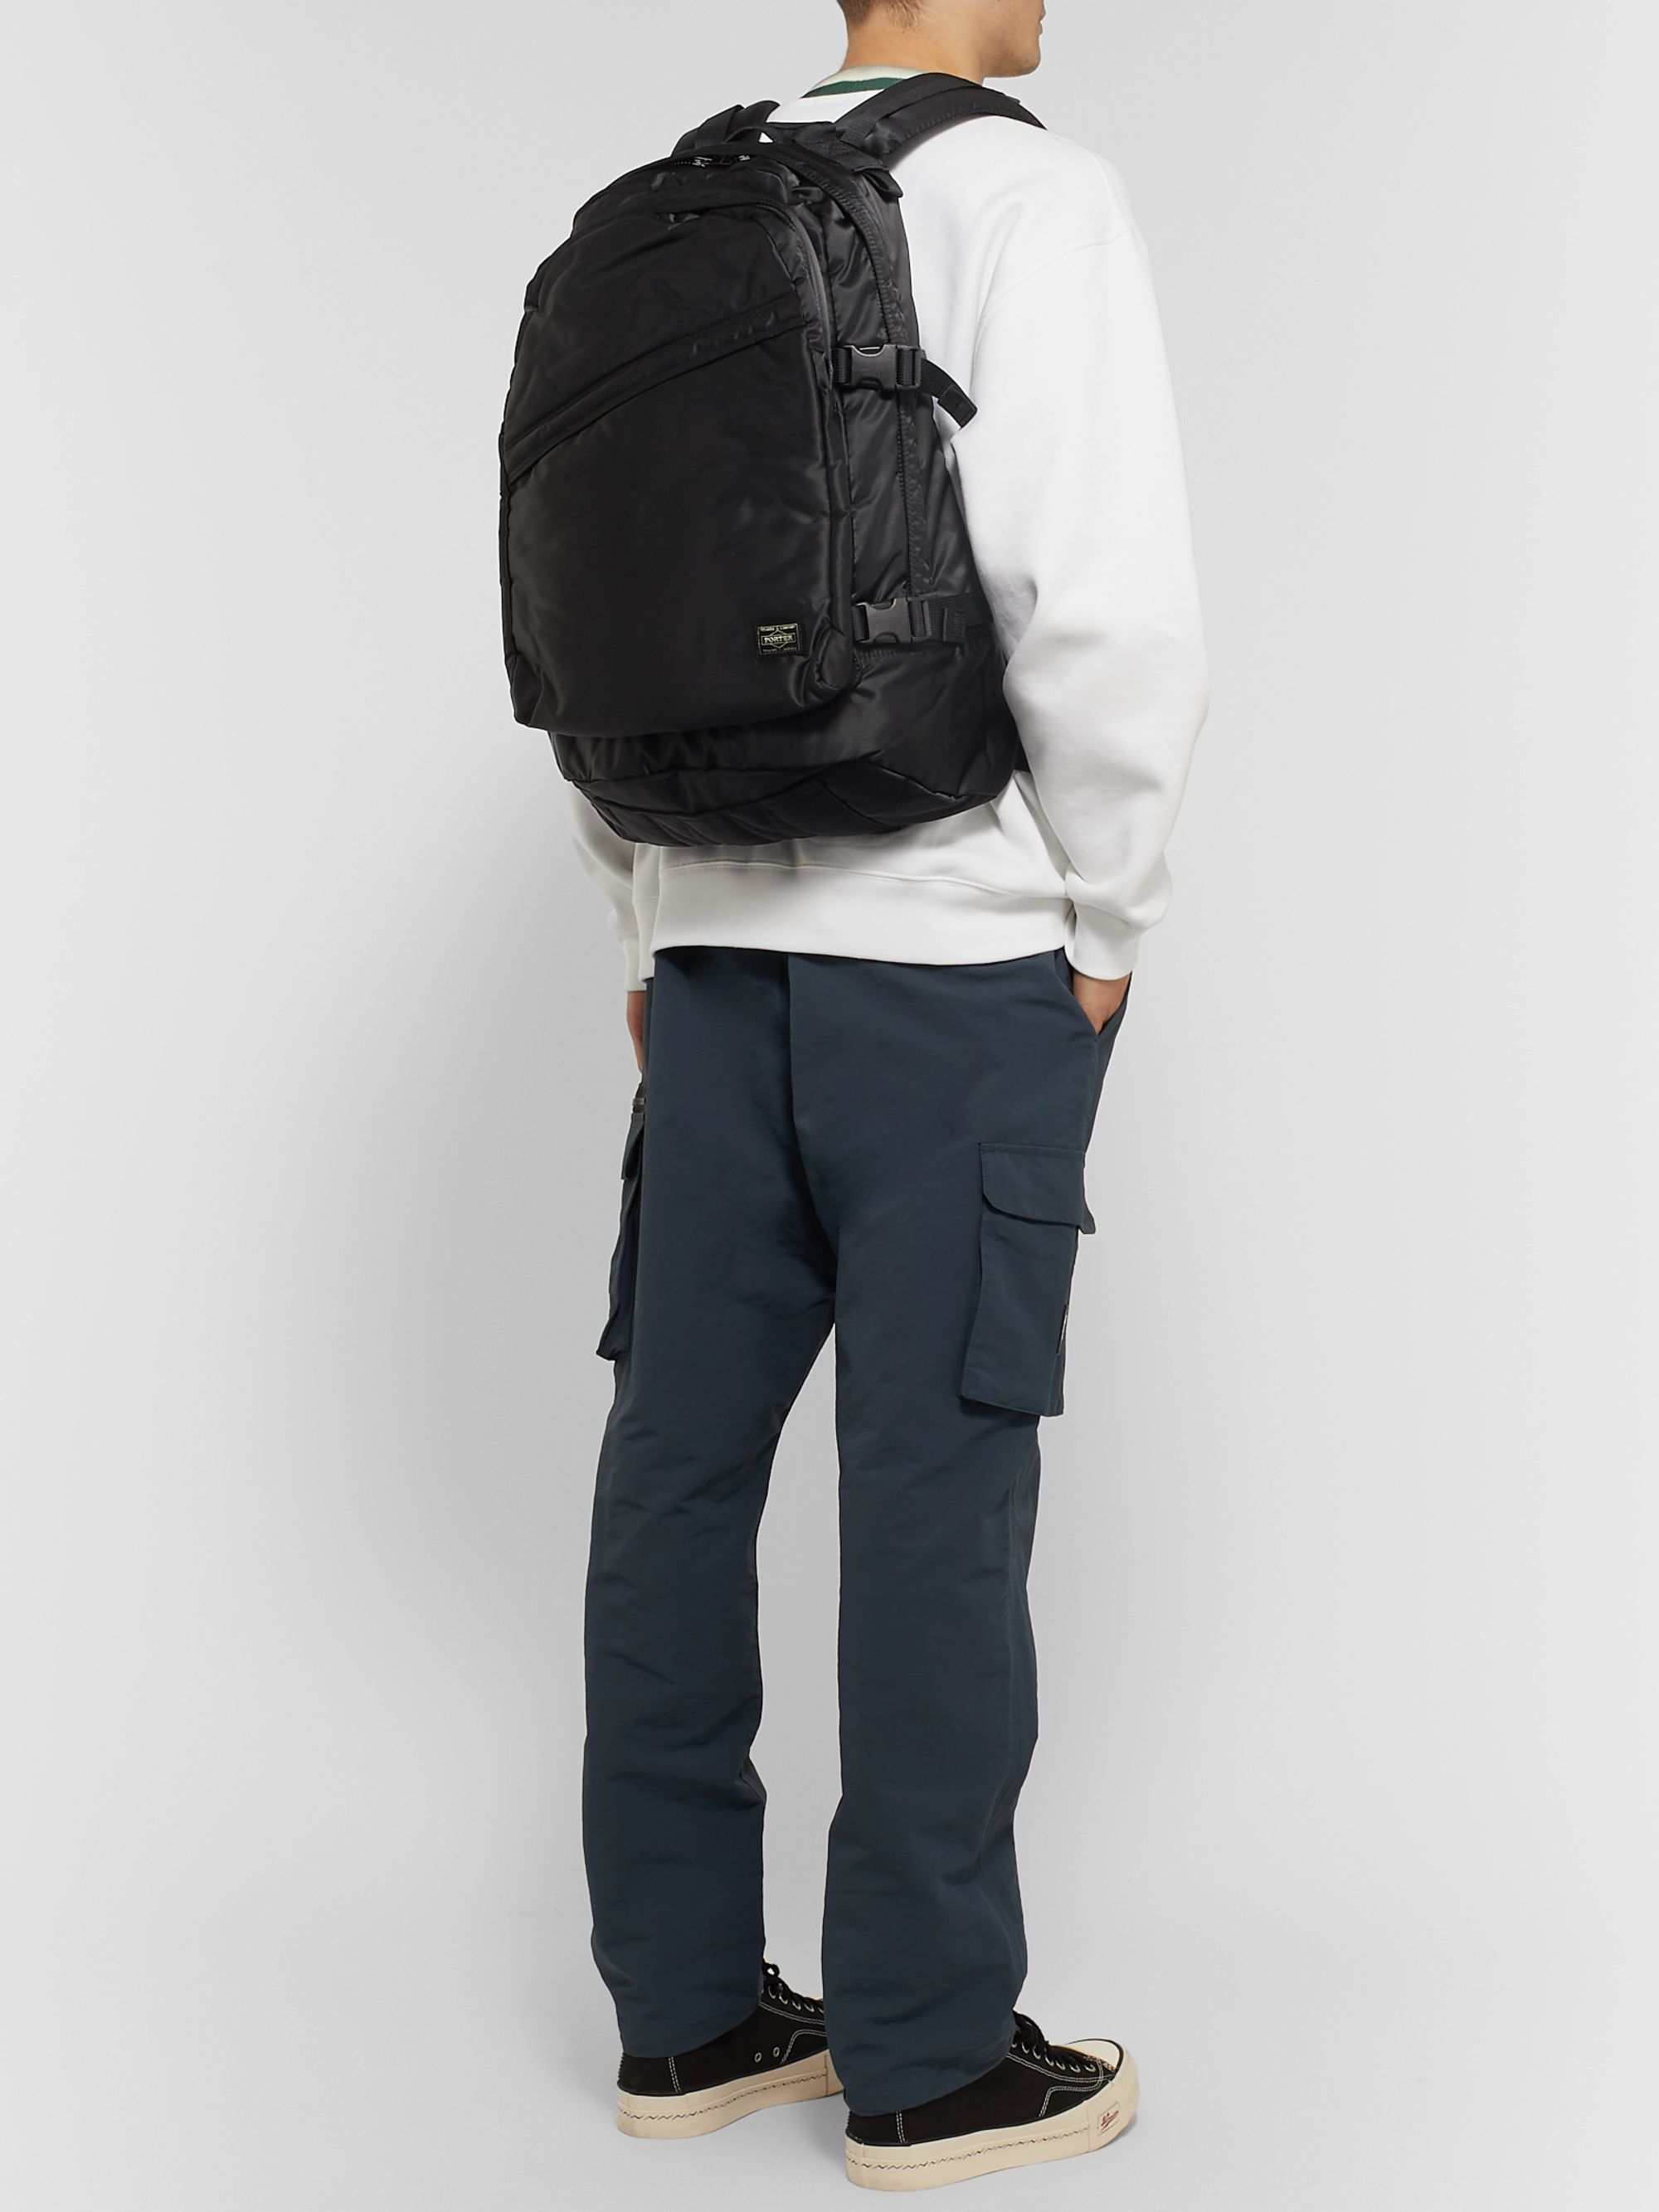 Porter-Yoshida & Co Tanker Padded Shell Backpack